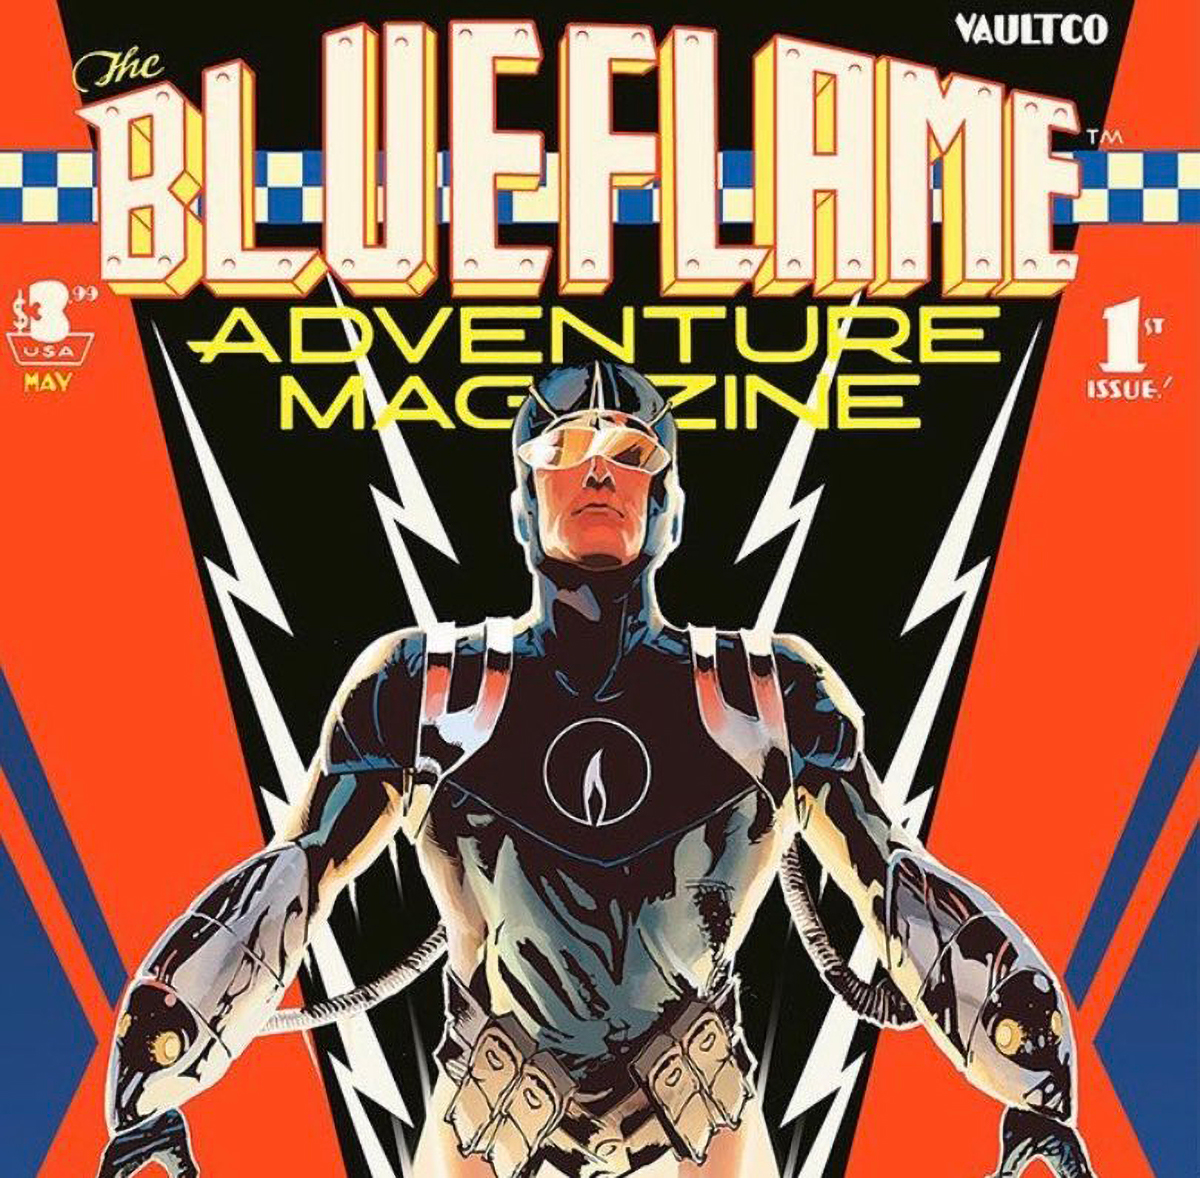 Vault Comics launching 'The Blue Flame' from Chris Cantwell & Adam Gorham